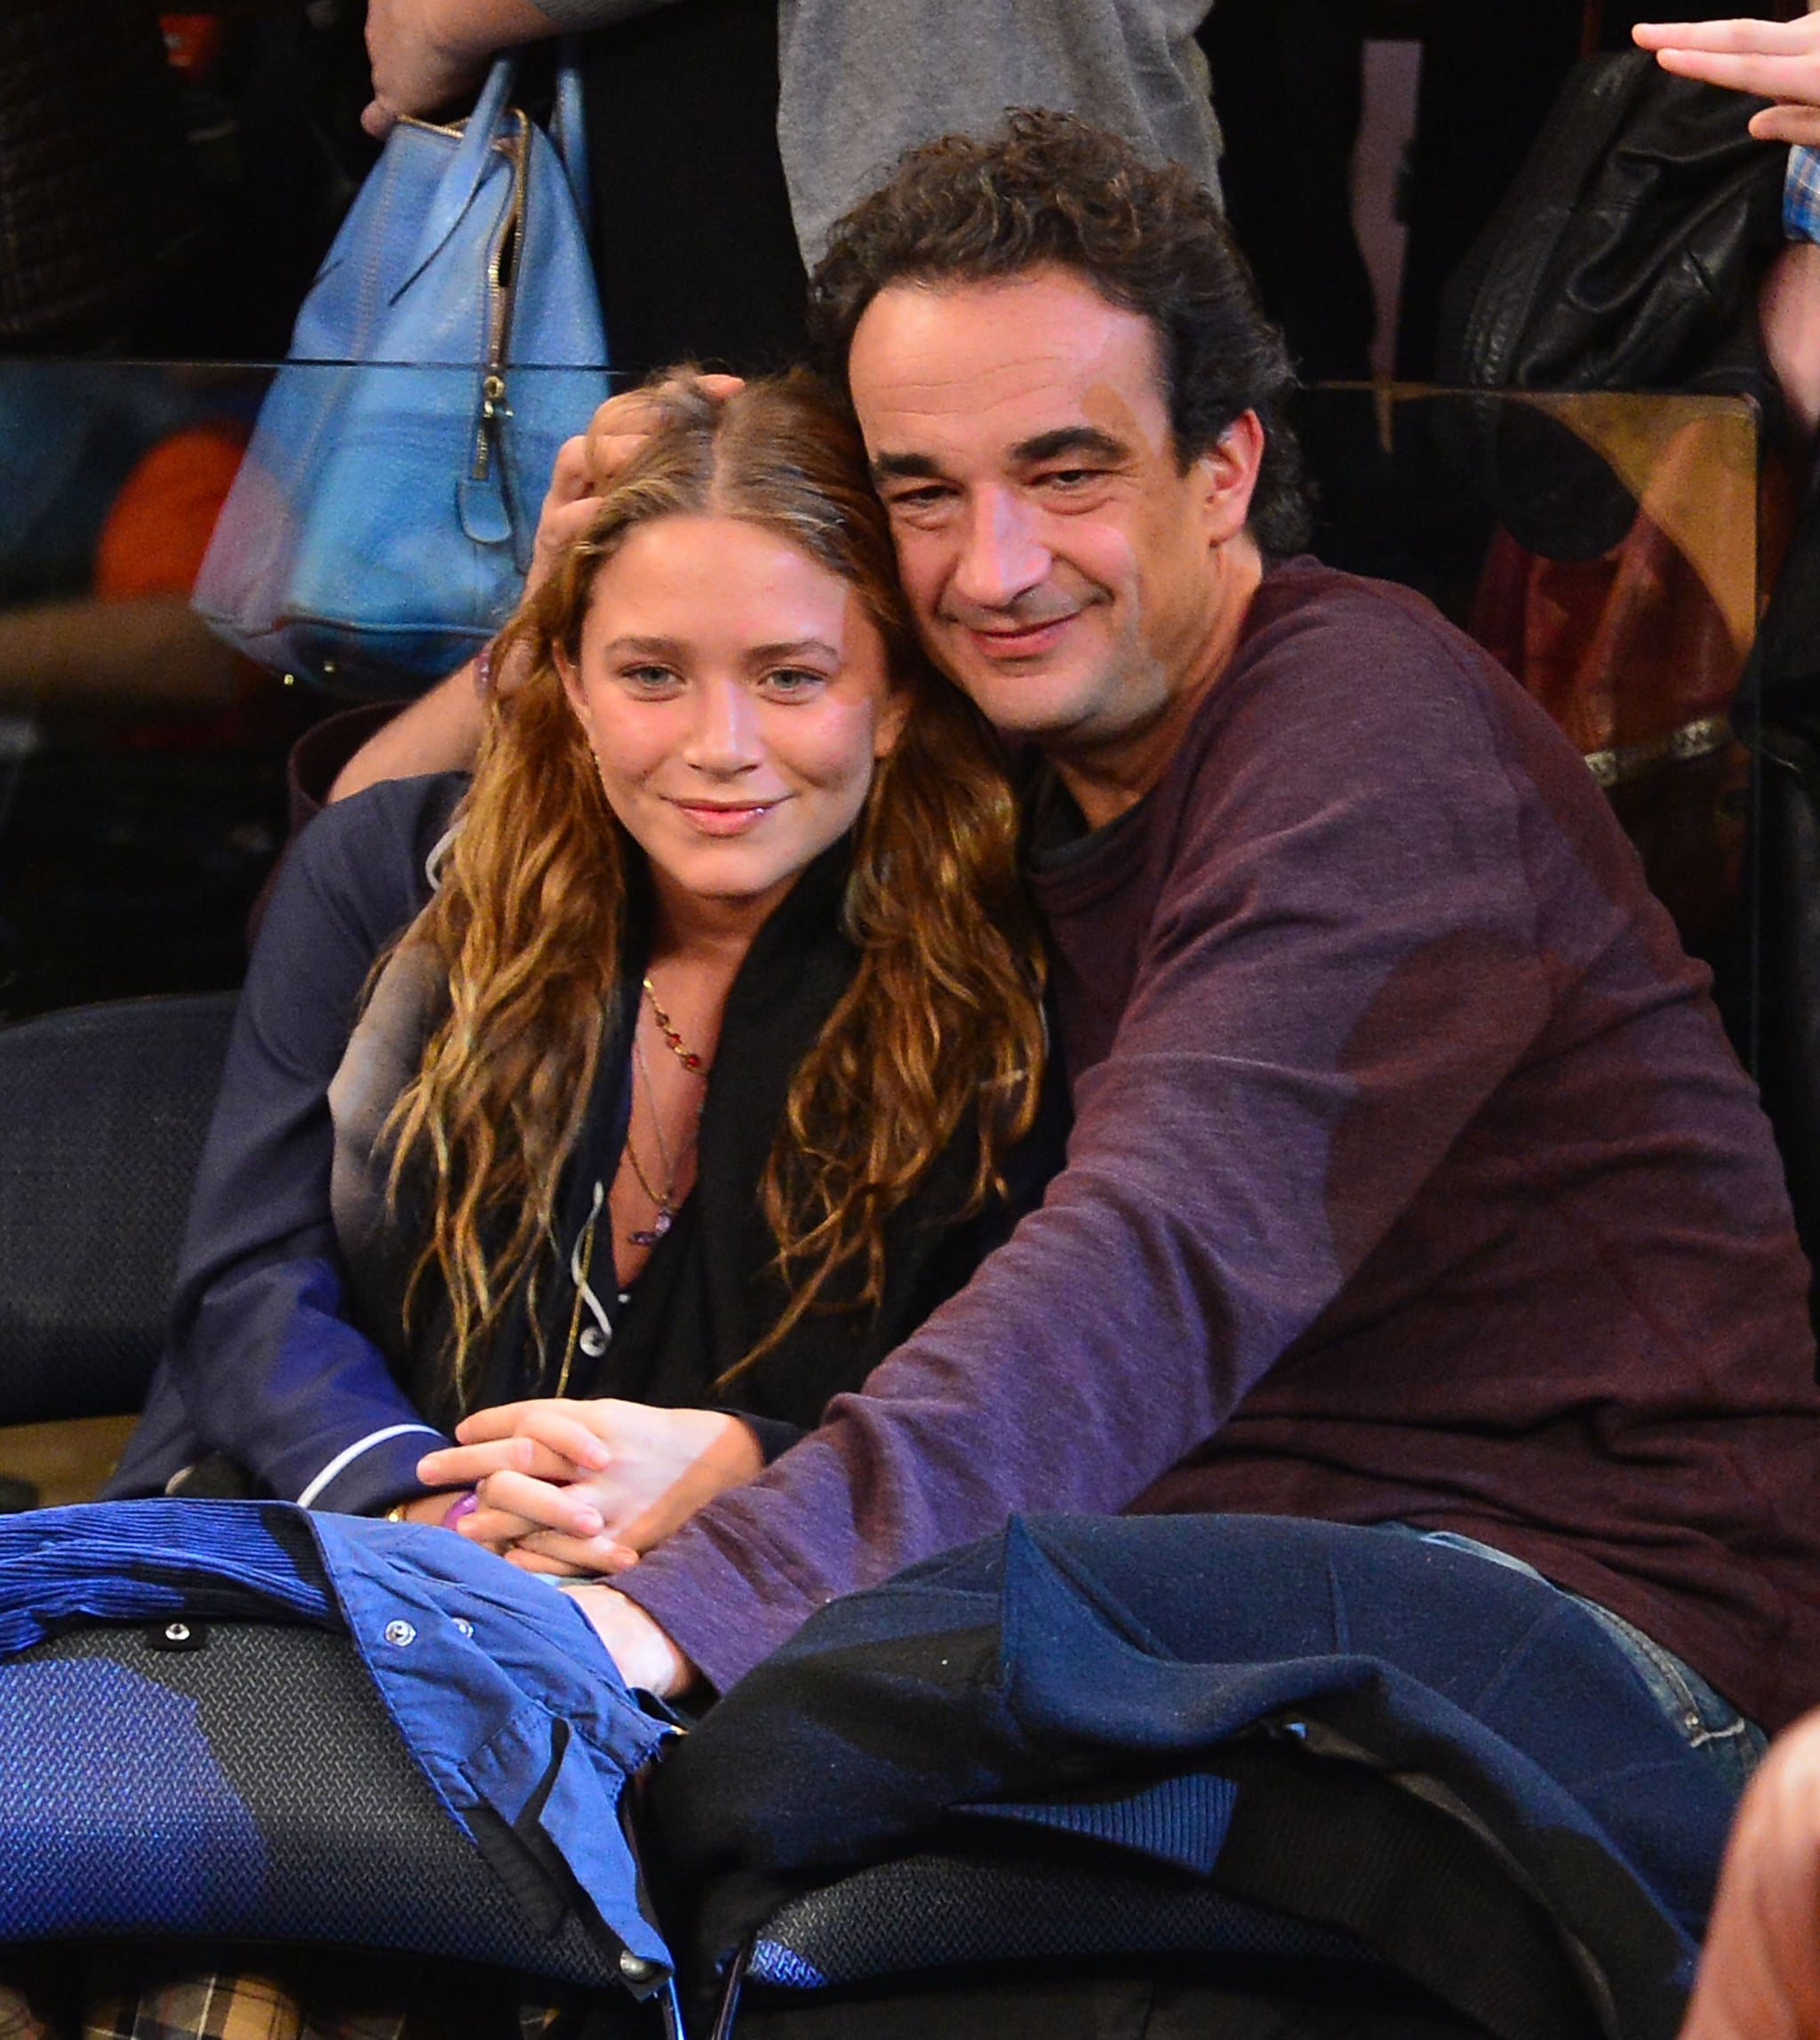 olivier sarkozy and mary kate olsen relationship